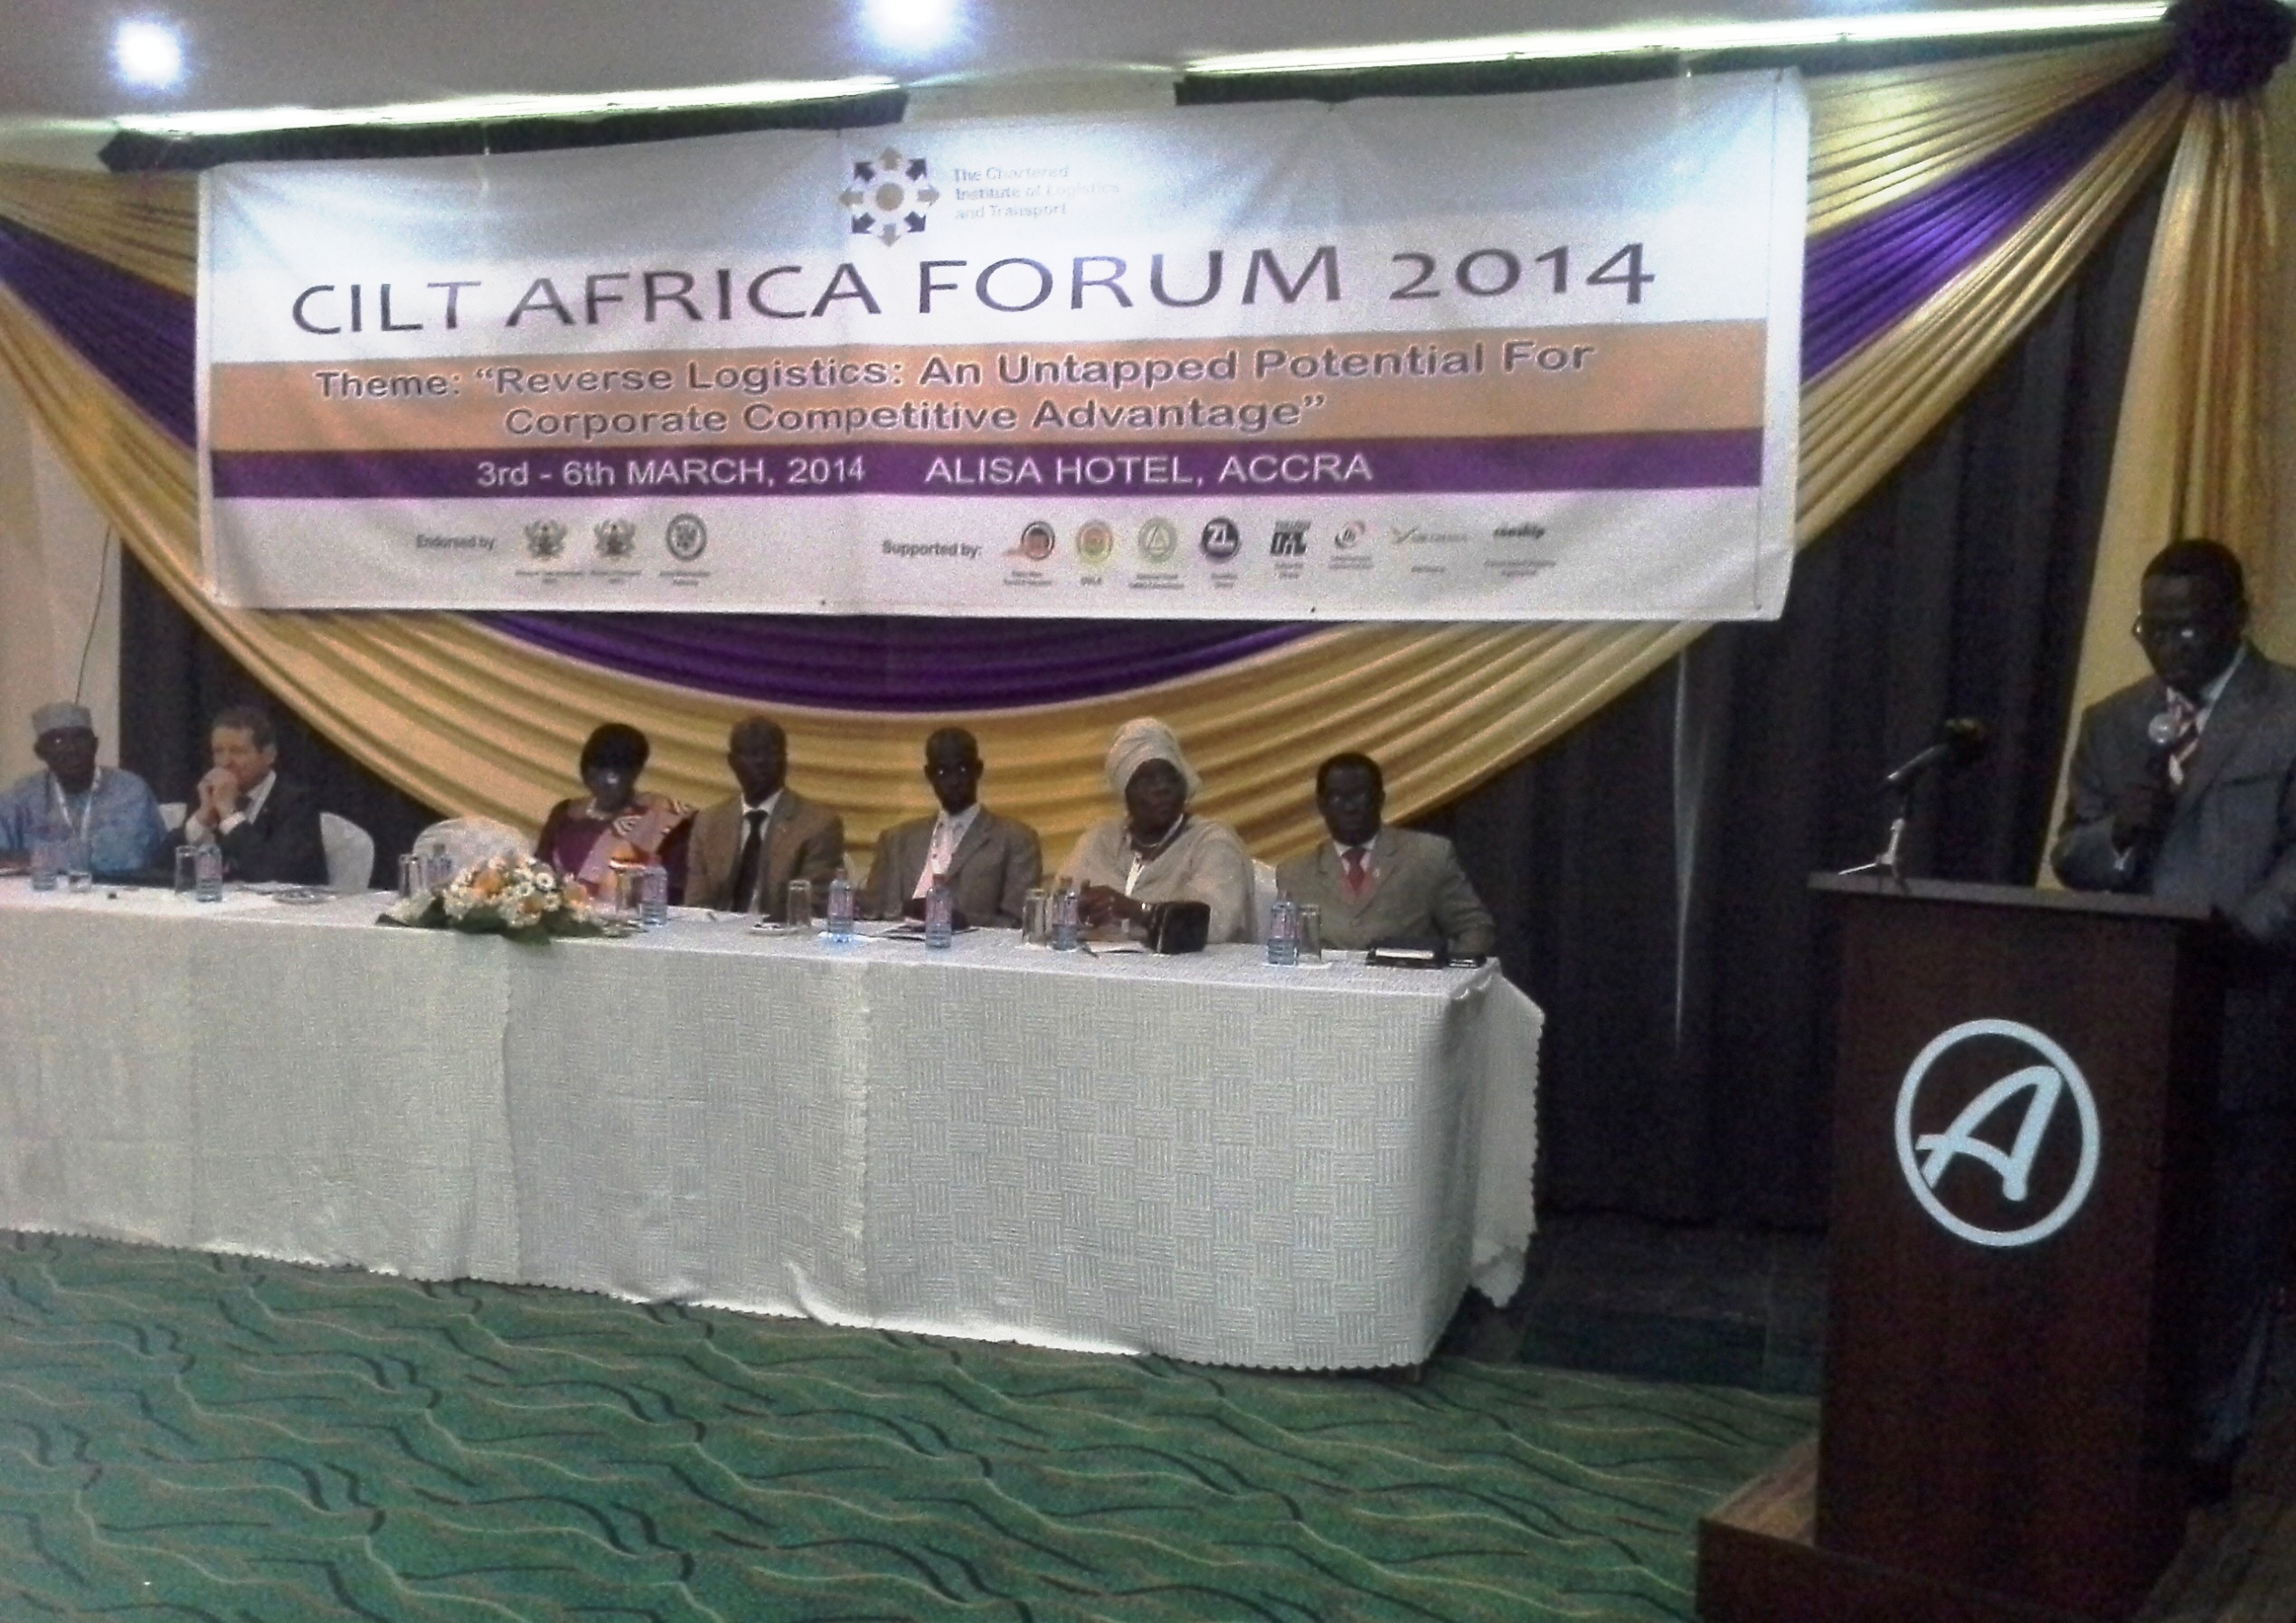 mr-g-d-mensah-president-cilt-ghana-delivering-a-speech-the-forum